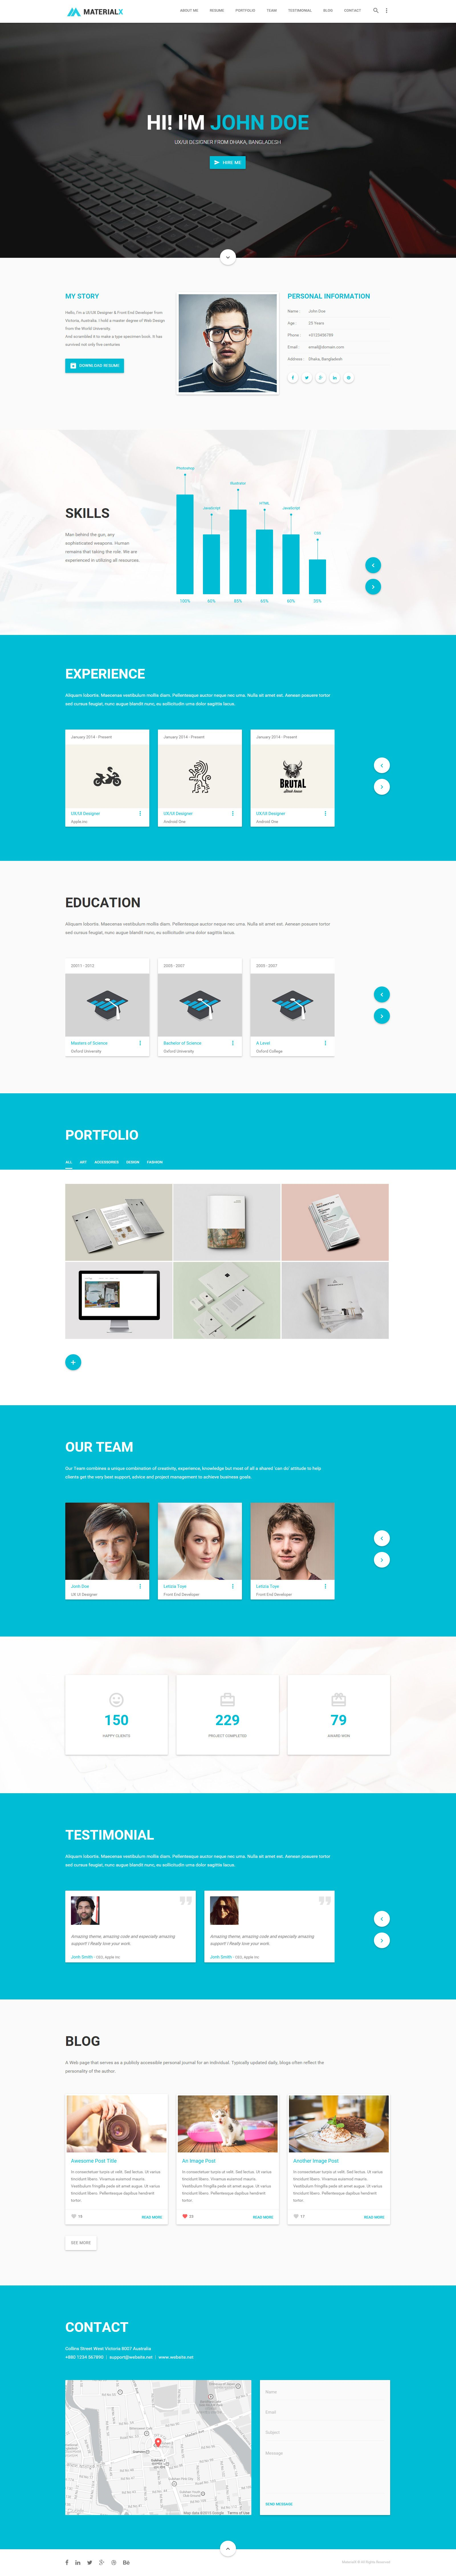 Materialx Is A Material Design Resume And Portfolio Template Based On  Twitter Bootstrap And Materialize, Developed For Professional To Display  Their Profile